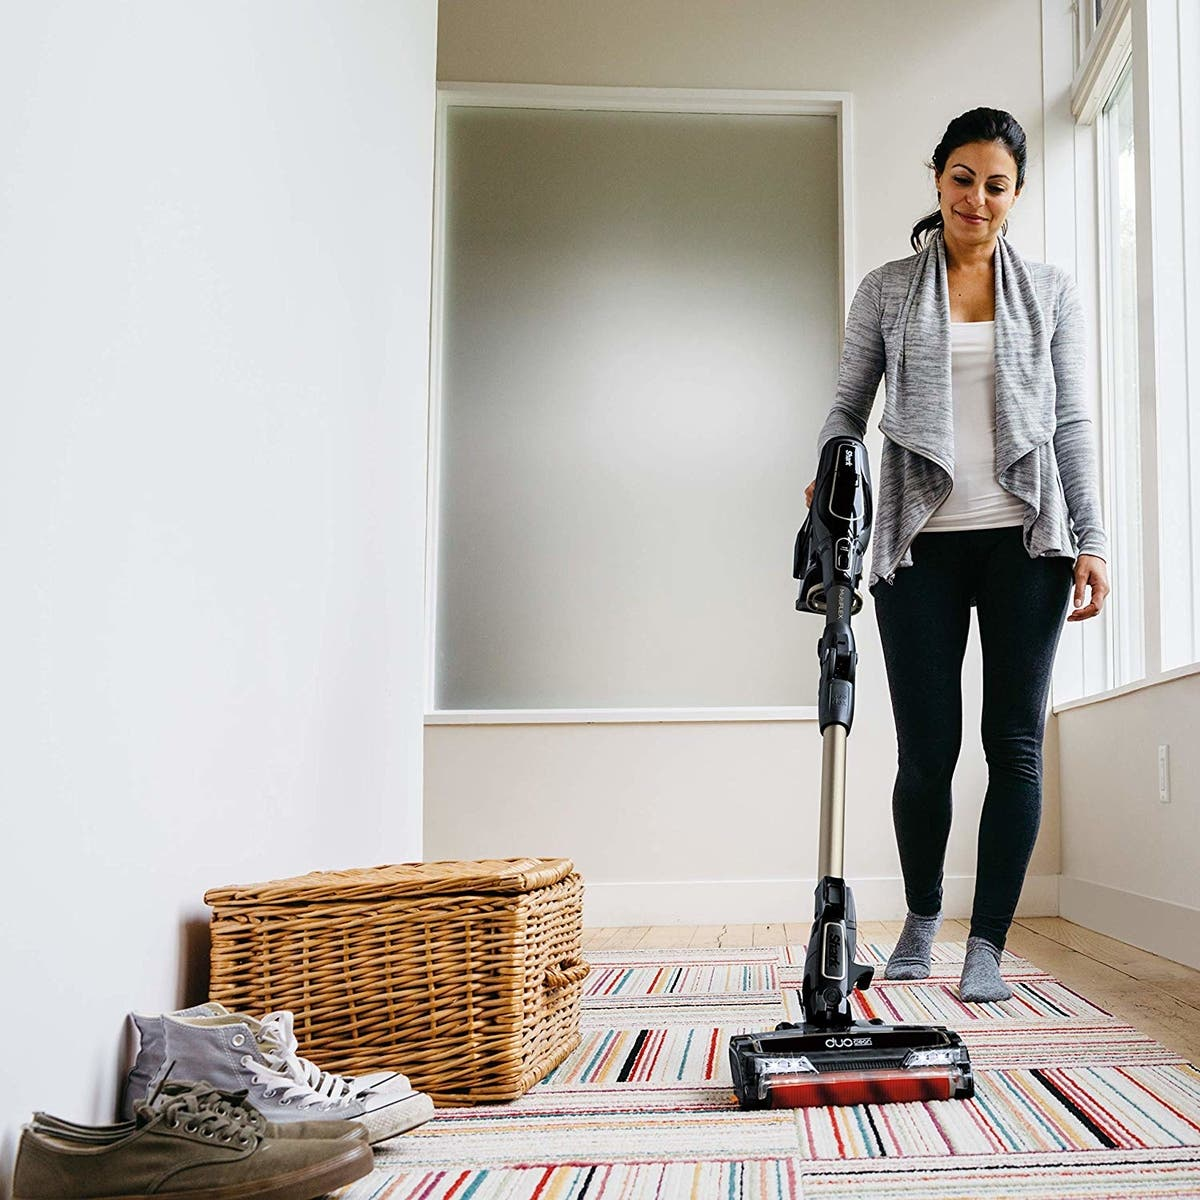 Save 150 On The Cordless Shark Vacuum That Cleans